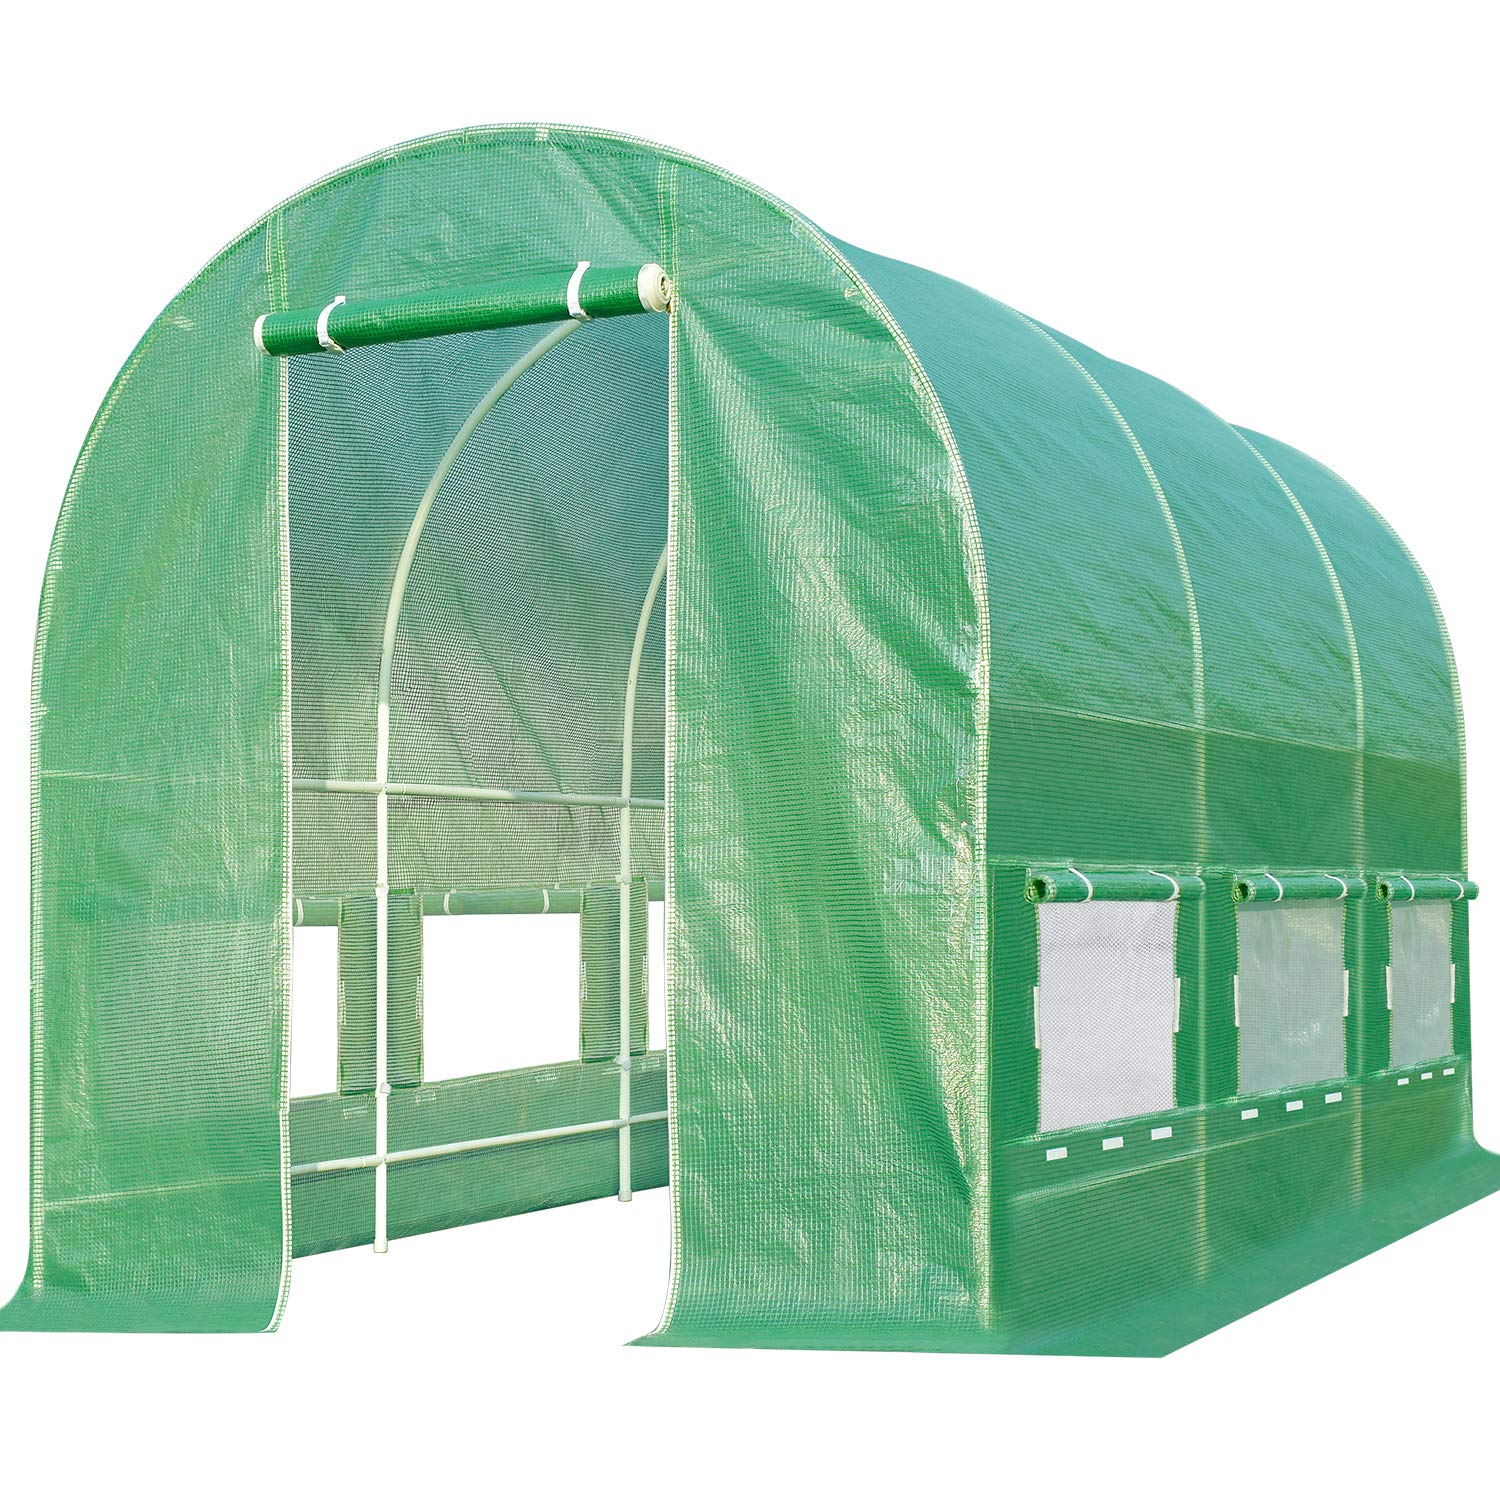 Quictent Portable Greenhouse Large Green Garden Hot House Grow Tent More Size (12' X 7' X 7') by Quictent